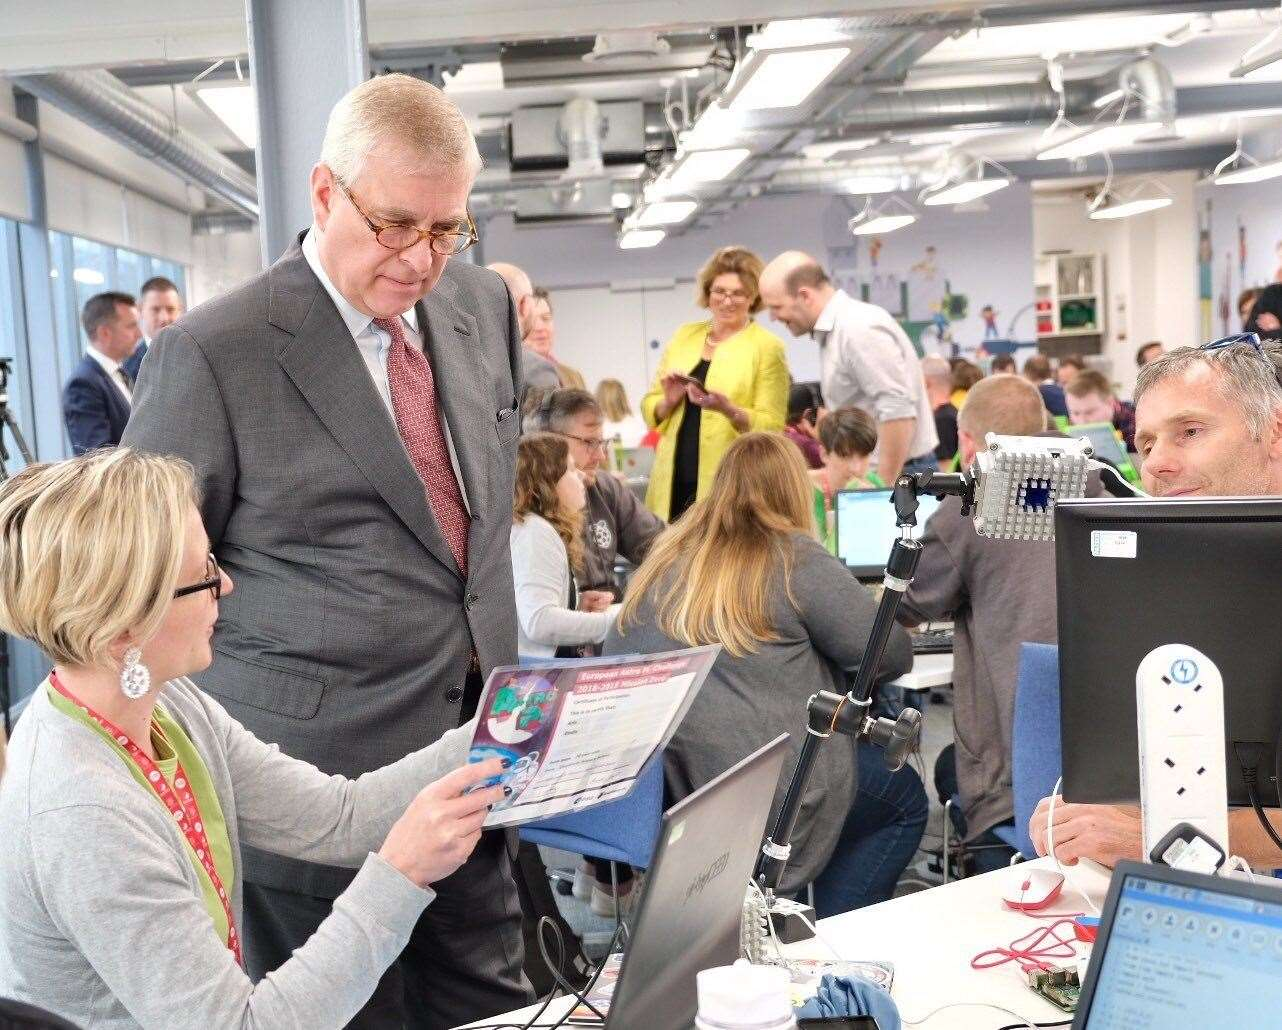 The Duke of York learns more about Astro Pi at the Raspberry Pi Foundation (11528508)